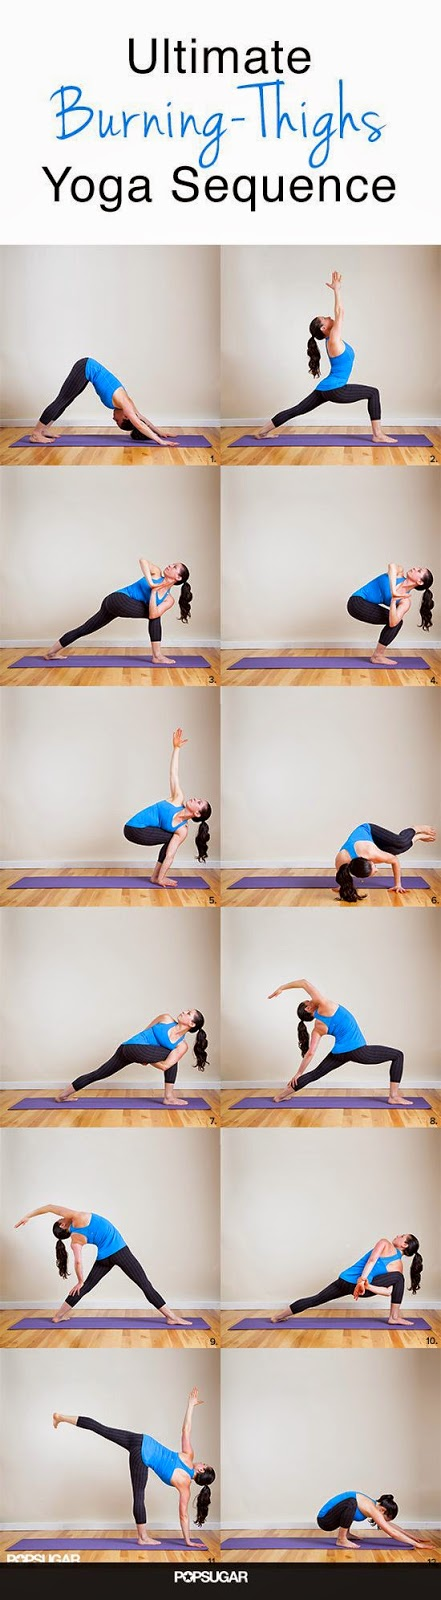 Source: www.PopSugar.com | Ultimate Burning-Thighs Yoga Sequence